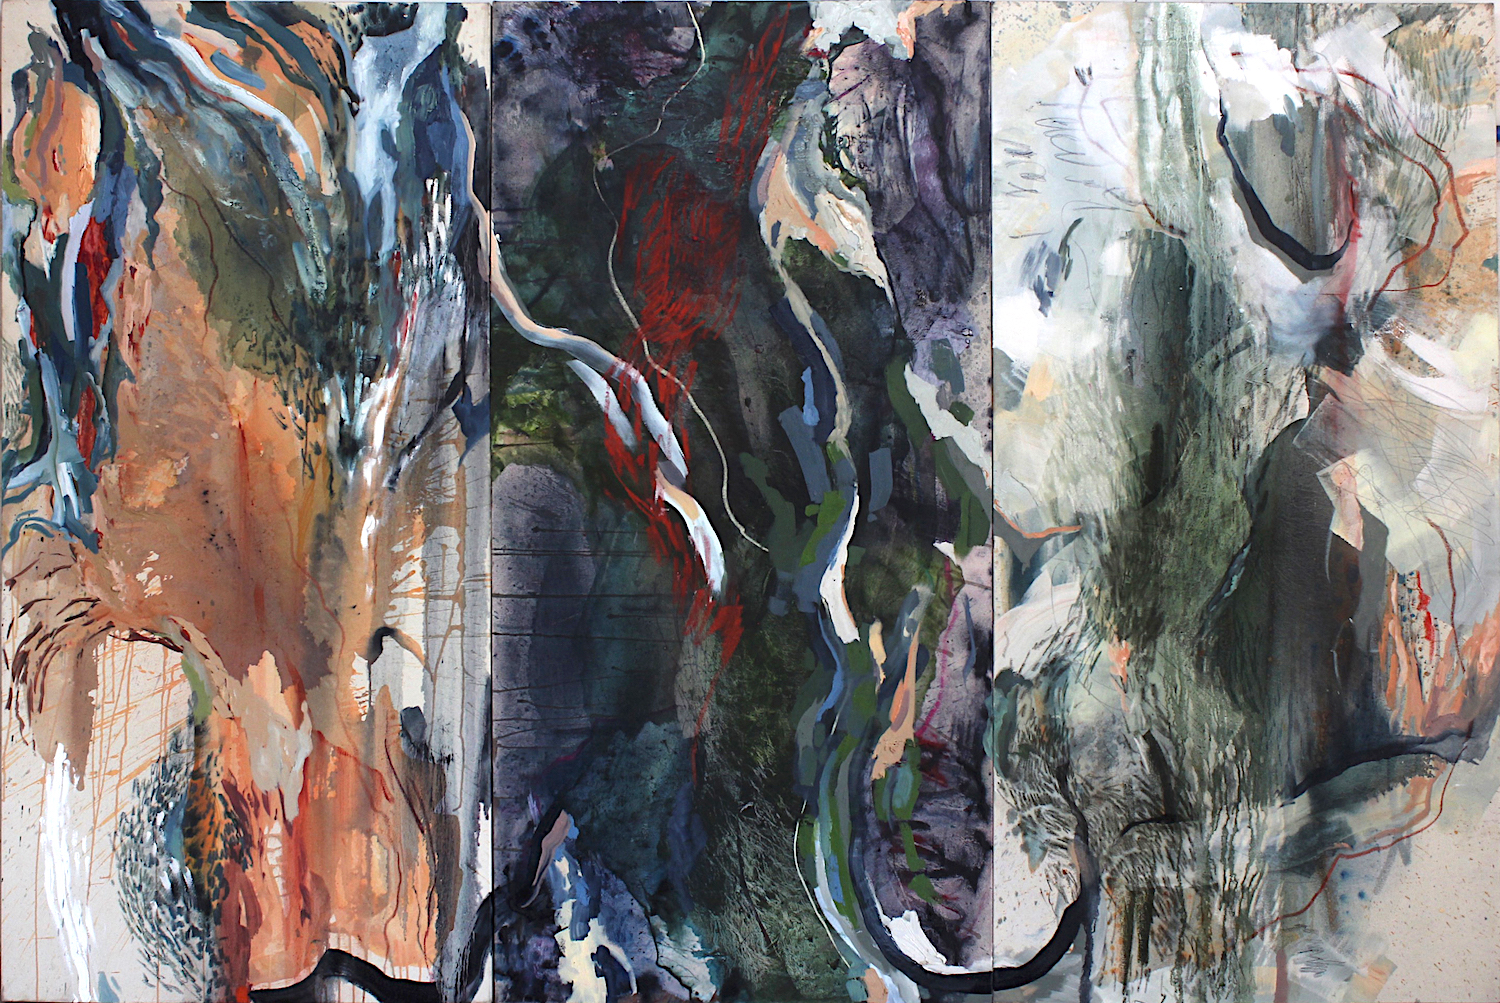 Mapping Umwinsi  2016 Oil and Soft Pastel on Canvas 240 x 160 cm (triptych)